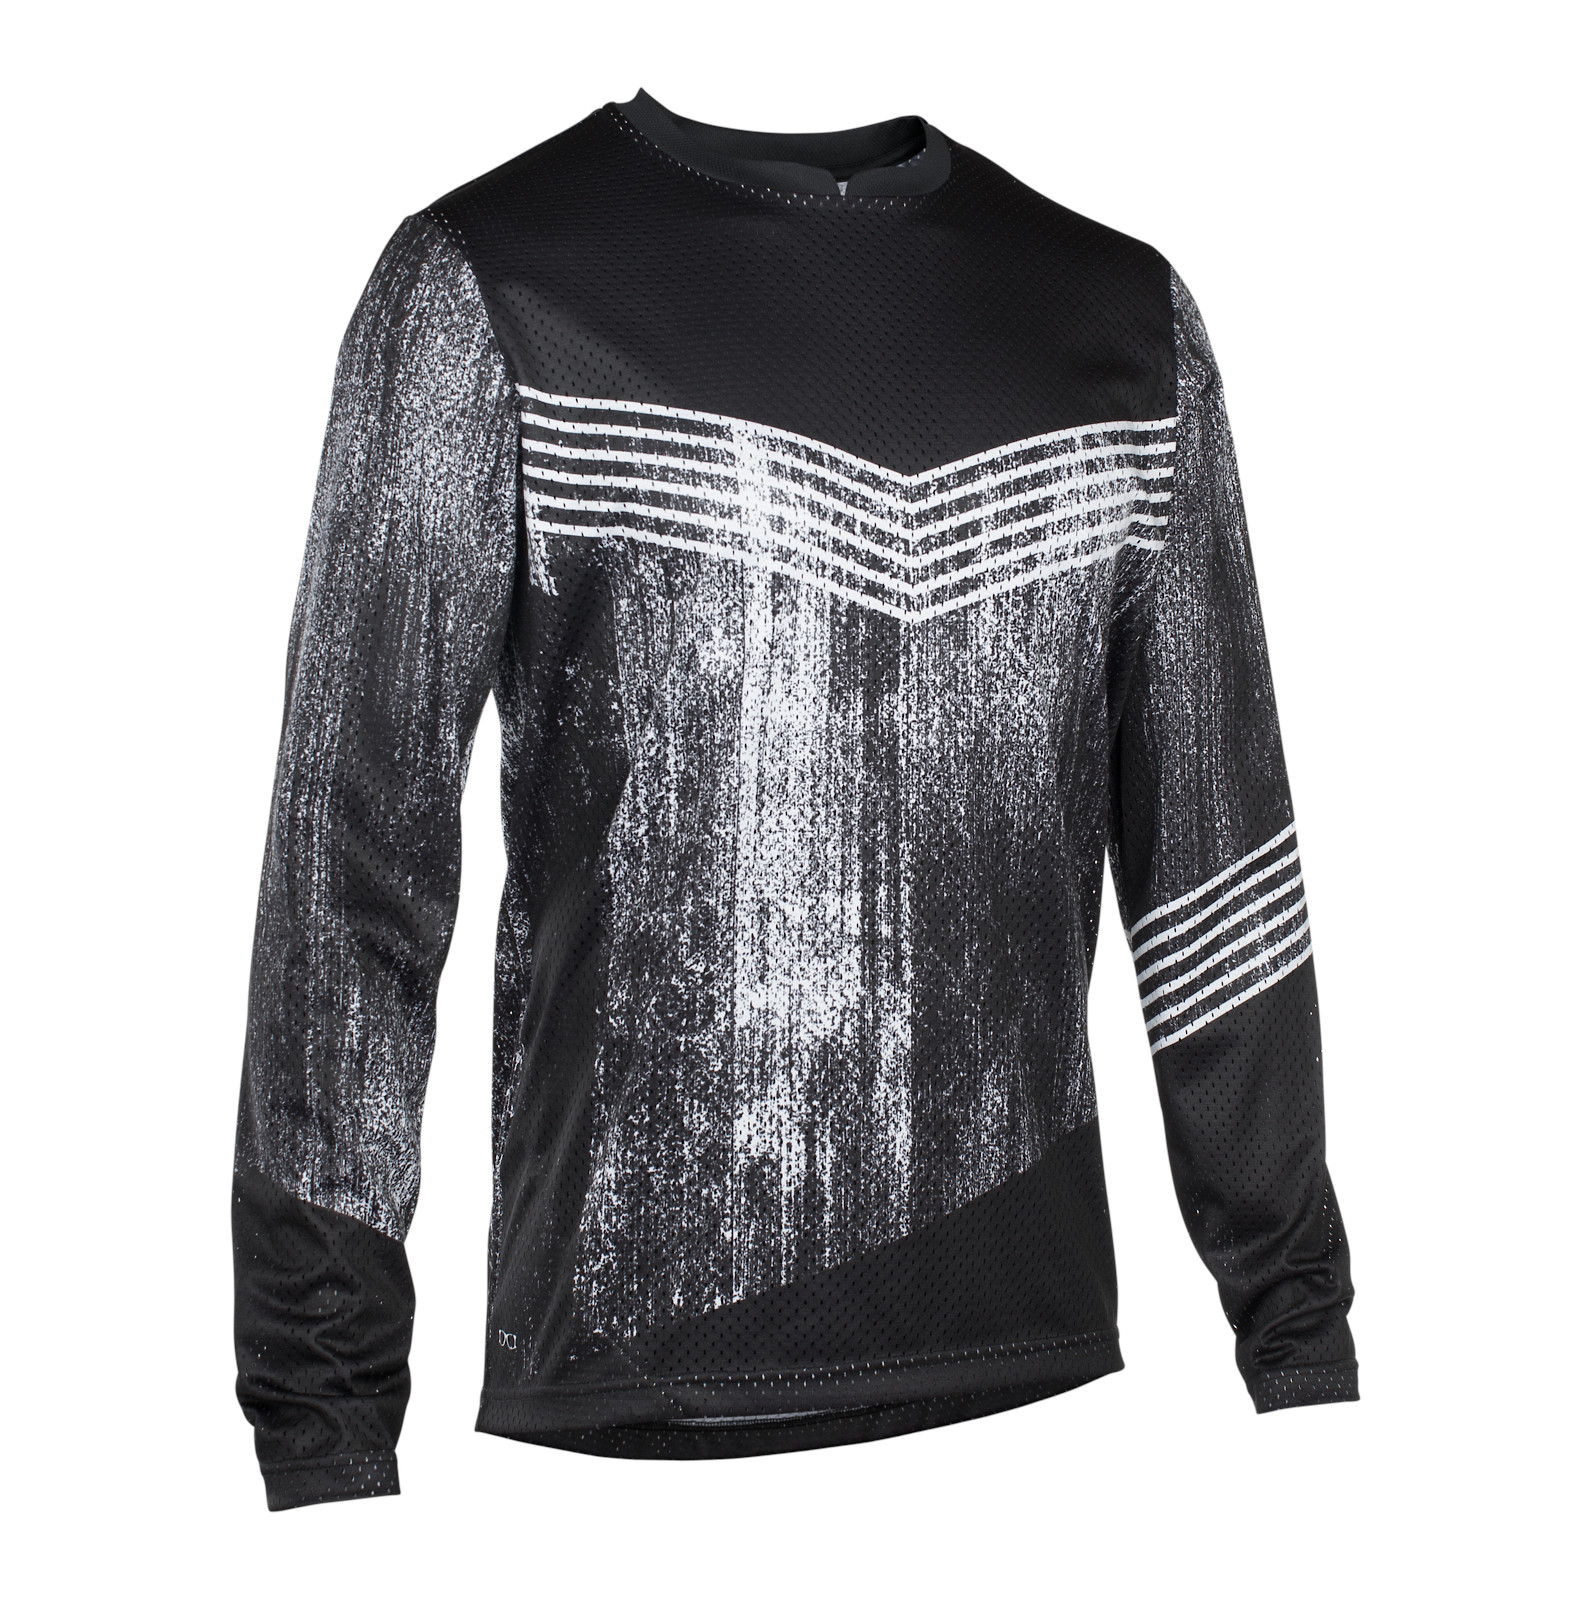 ION Scrub Long-Sleeve (black/white)